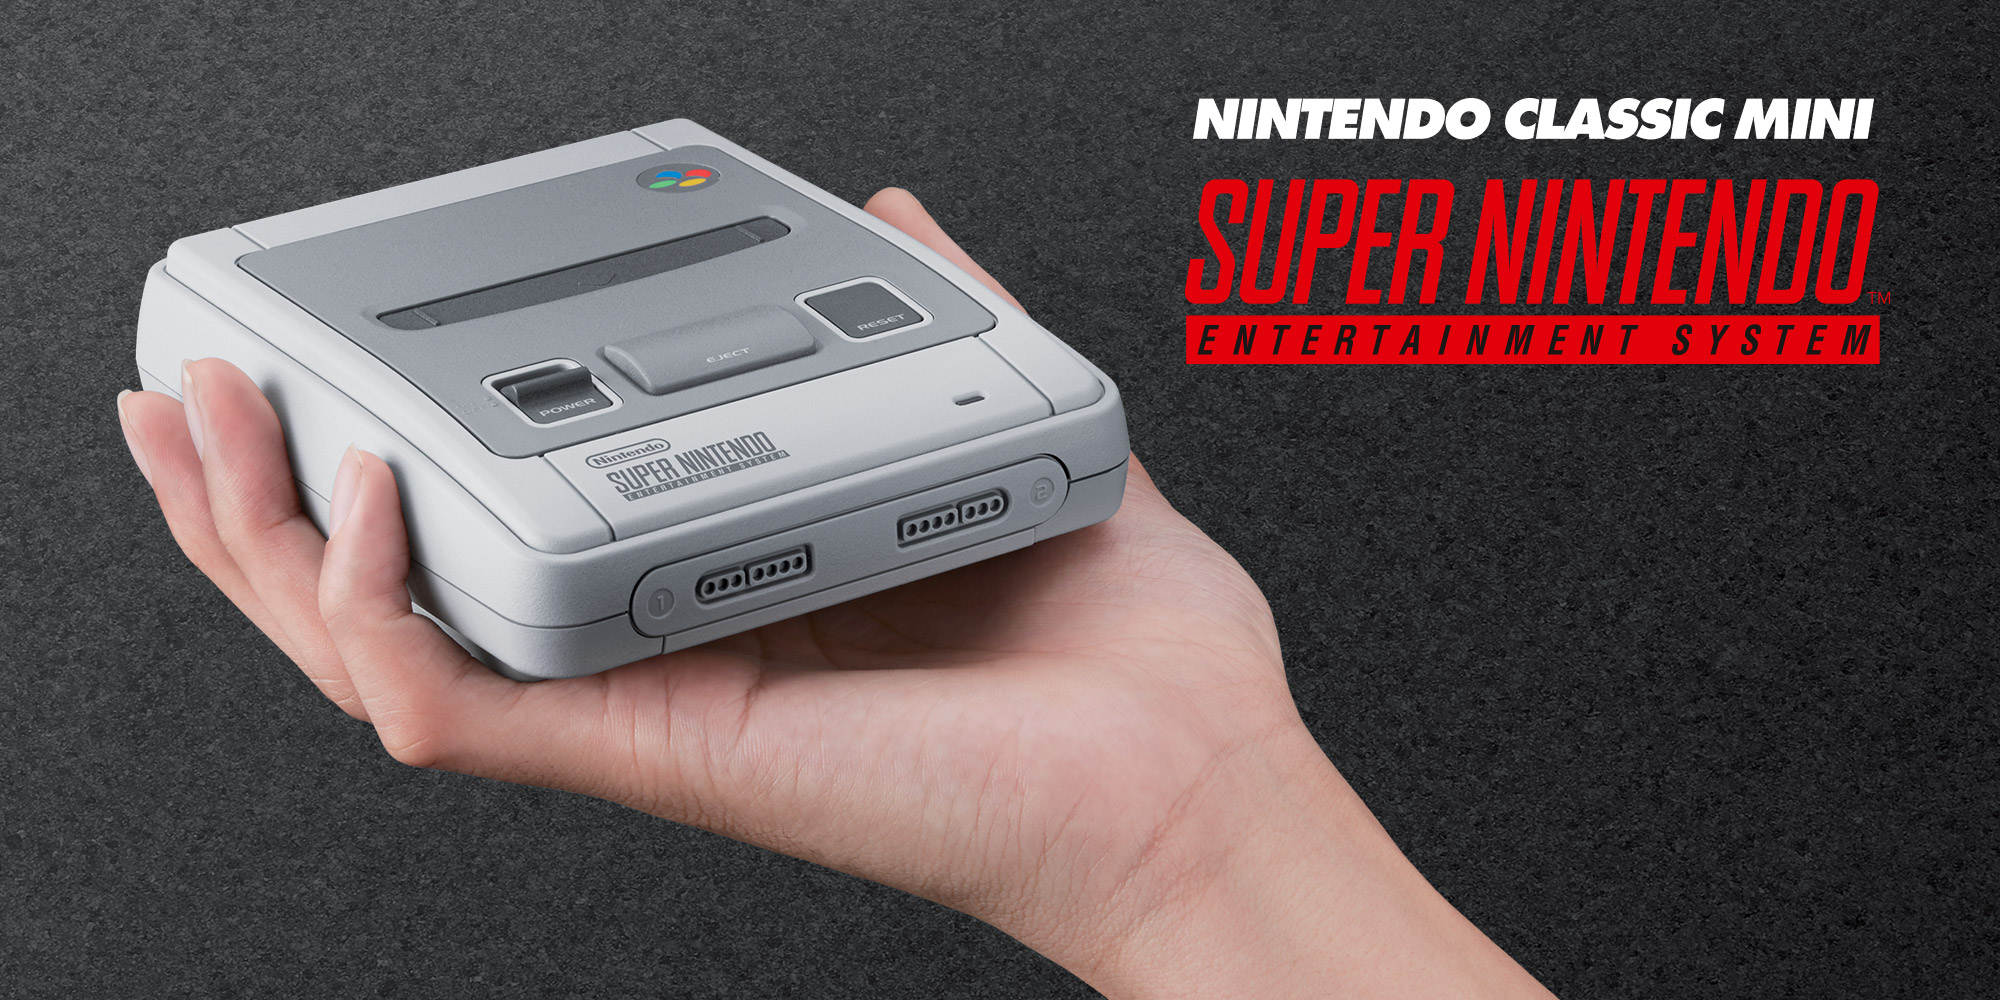 Nintendo announces the Nintendo Classic Mini: Super Nintendo Entertainment System